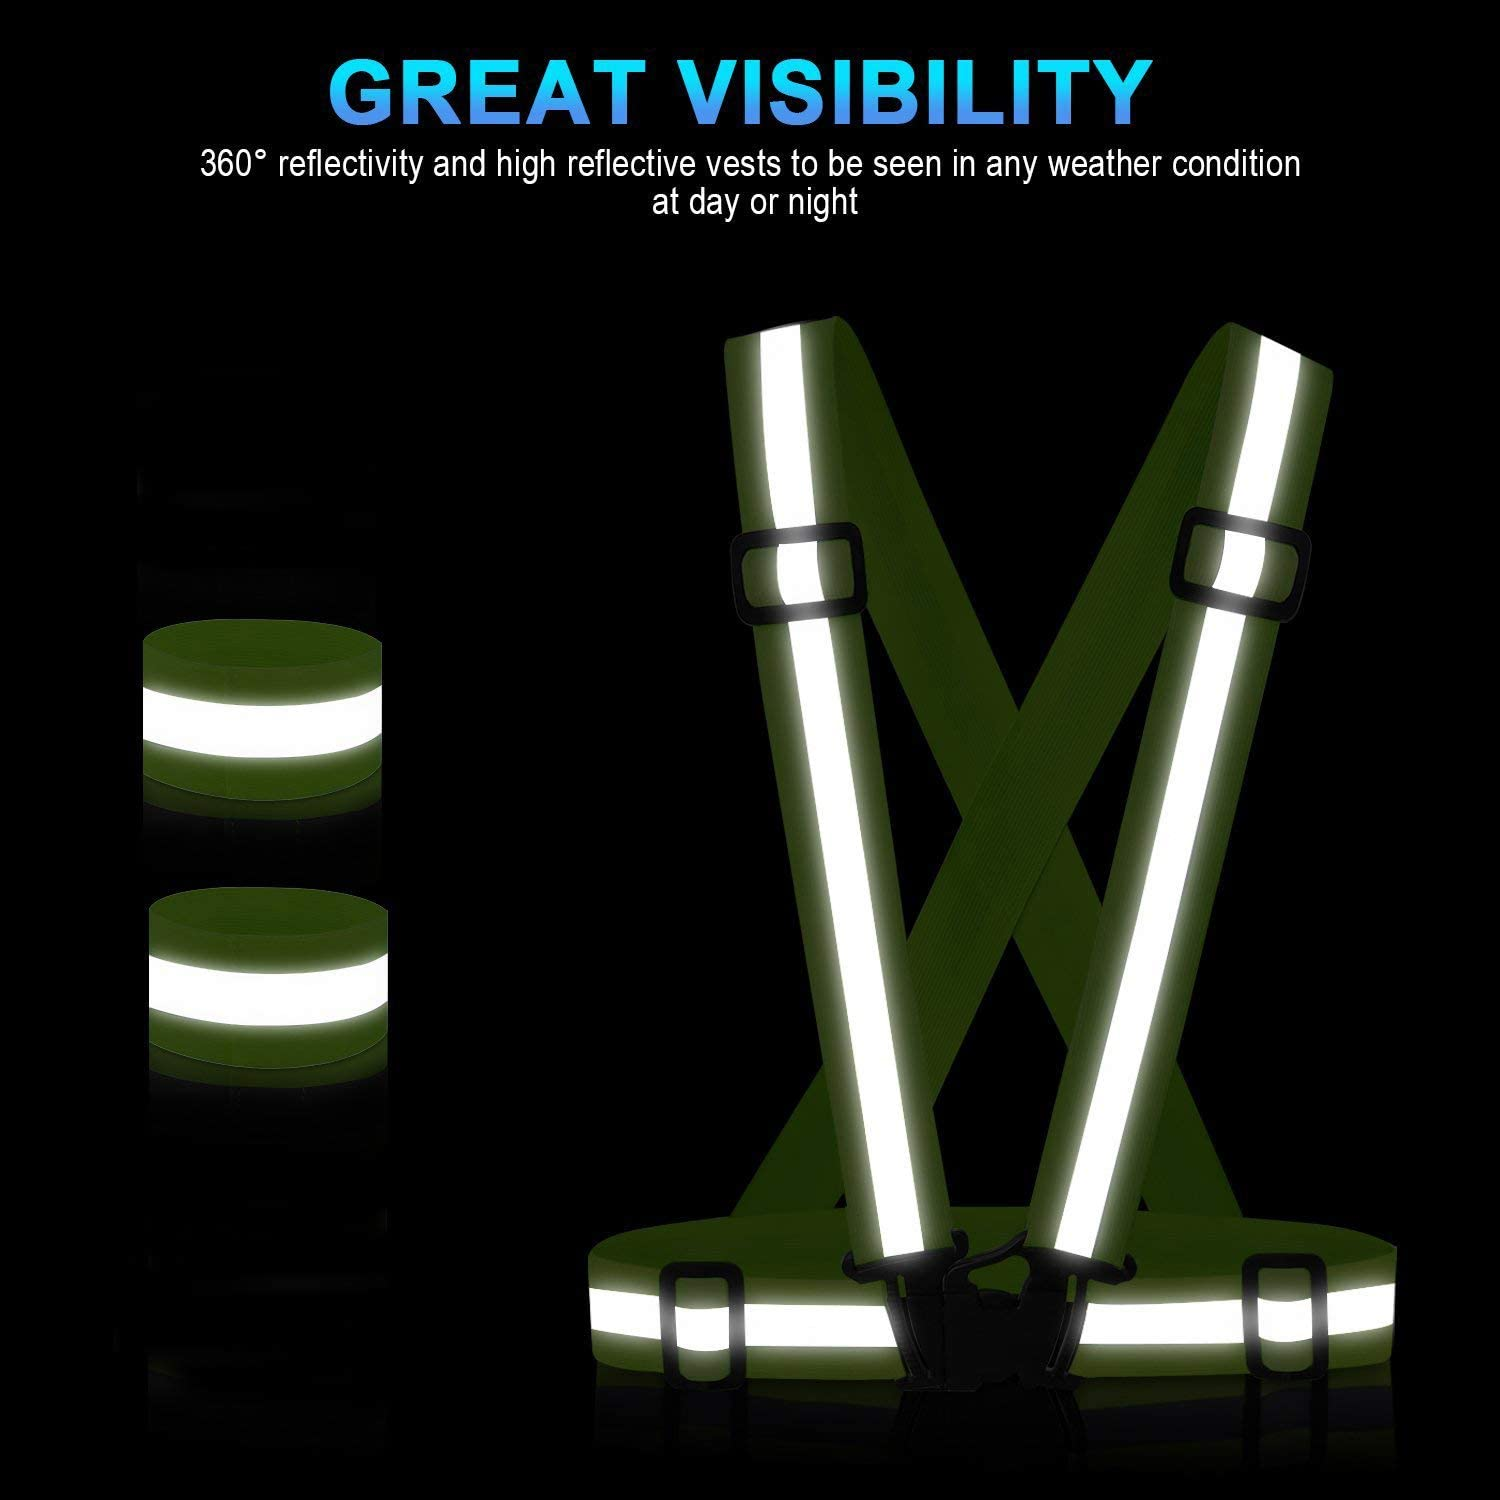 SAWNZC Reflective Vest Running Gear 2Pack, Adjustable Safety Vest Outdoor Reflective Belt High Visibility with 4 Reflective Wristbands Straps for Night Cycling Walking Jogging Motorcycle Dog Walking : Clothing